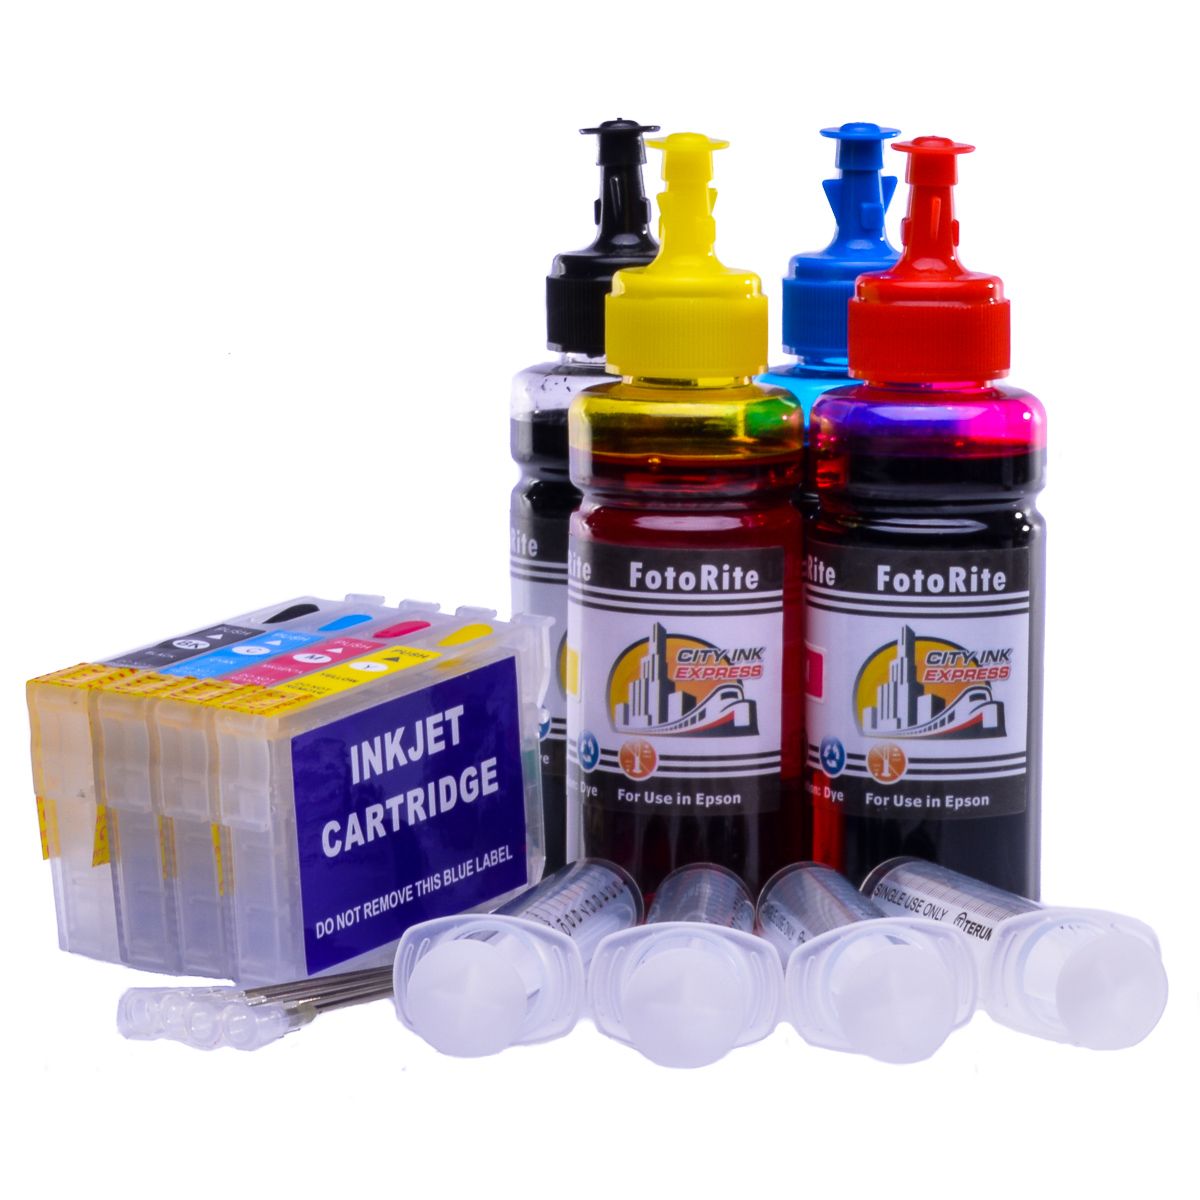 Multipack Cheap printer cartridges for Epson XP-212 | Refillable dye and pigment ink